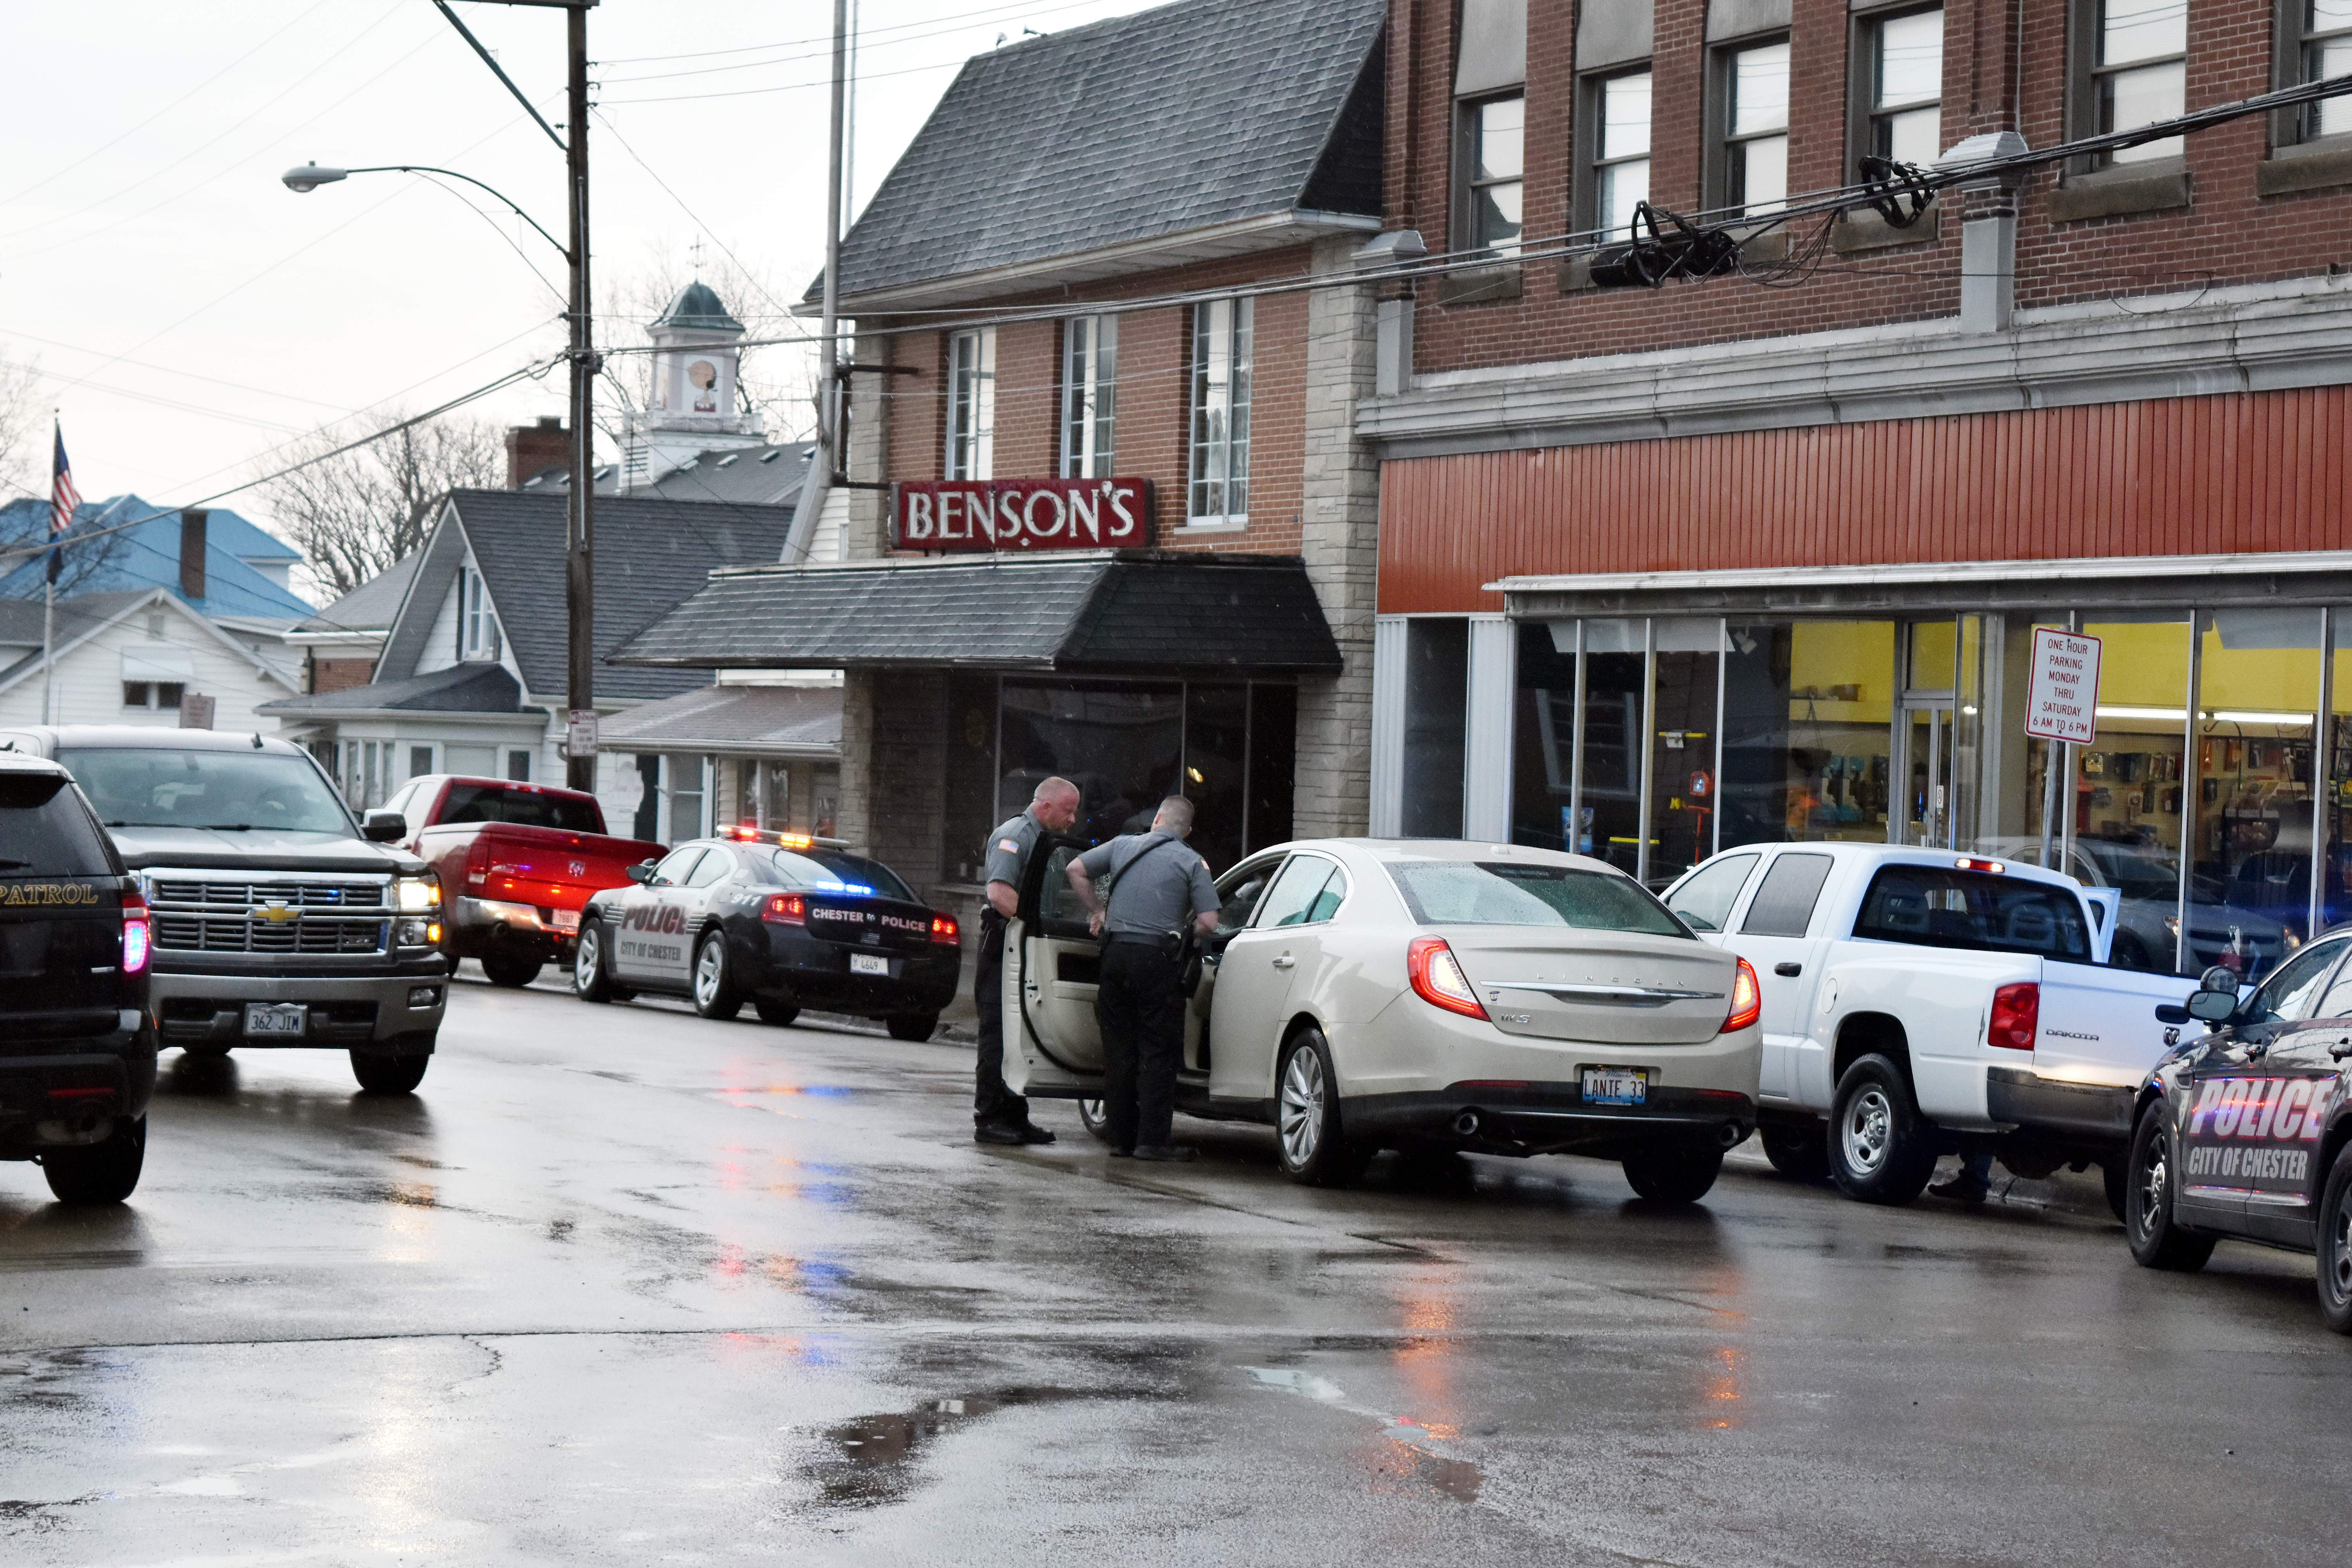 Chester Police officers attend to a two-vehicle traffic crash last Tuesday near the intersection of Swanwick and West Holmes streets. No injuries were reported at the scene.